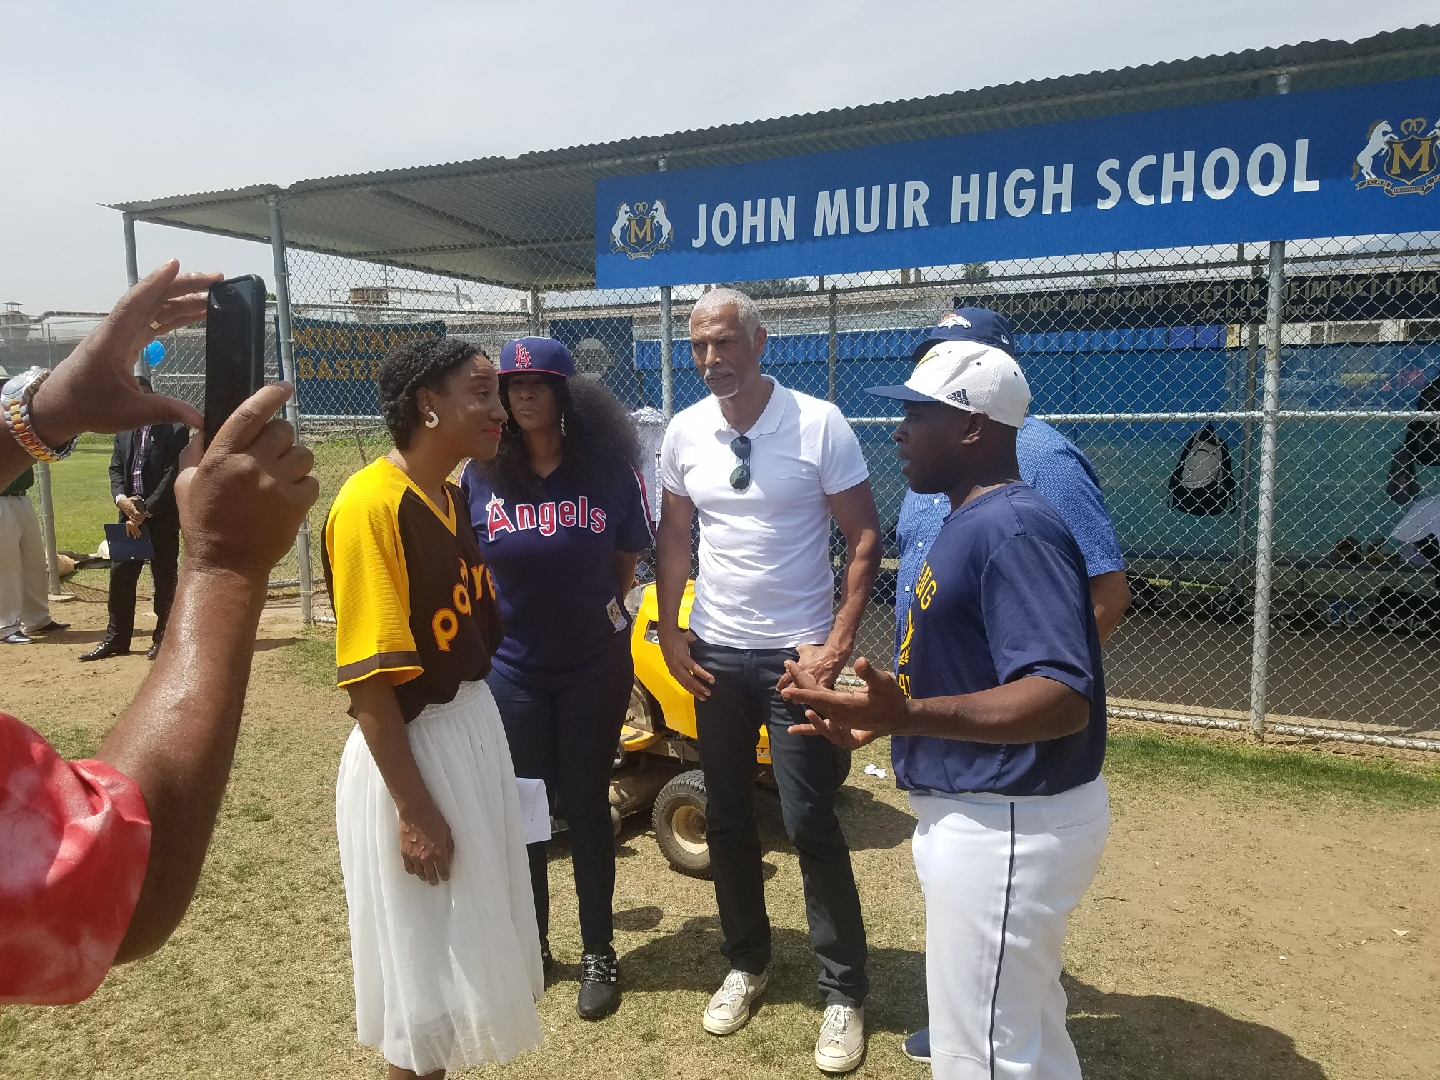 Our family would like to thank John Muir High School from the bottom of our hearts.